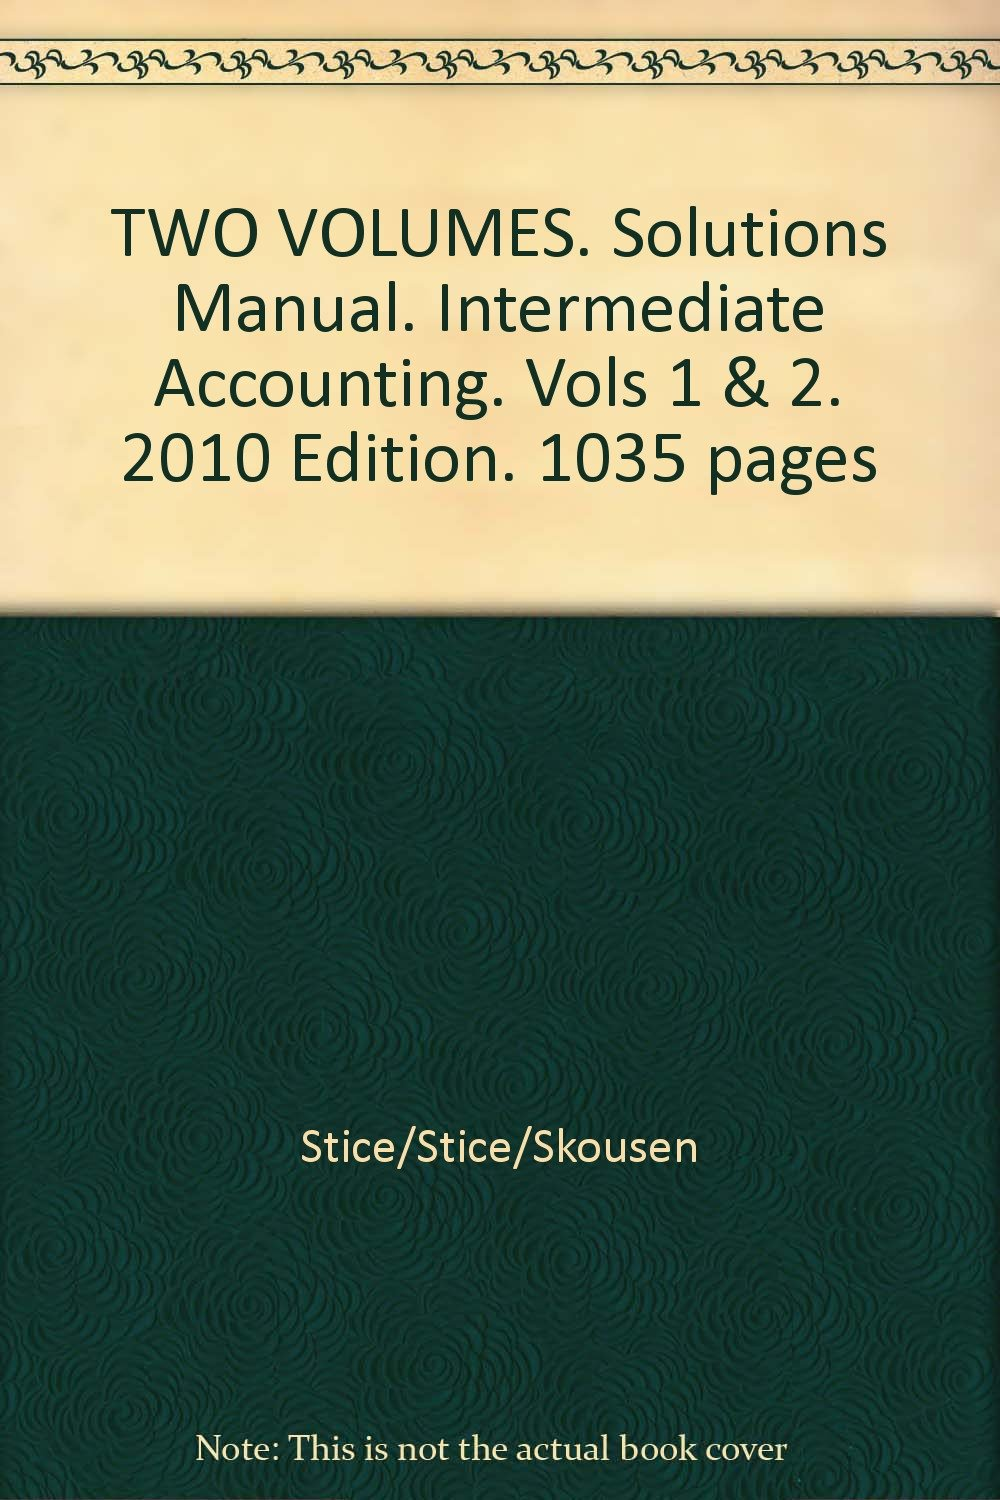 TWO VOLUMES. Solutions Manual. Intermediate Accounting. Vols 1 & 2. 2010  Edition. 1035 pages: Stice/Stice/Skousen: Amazon.com: Books